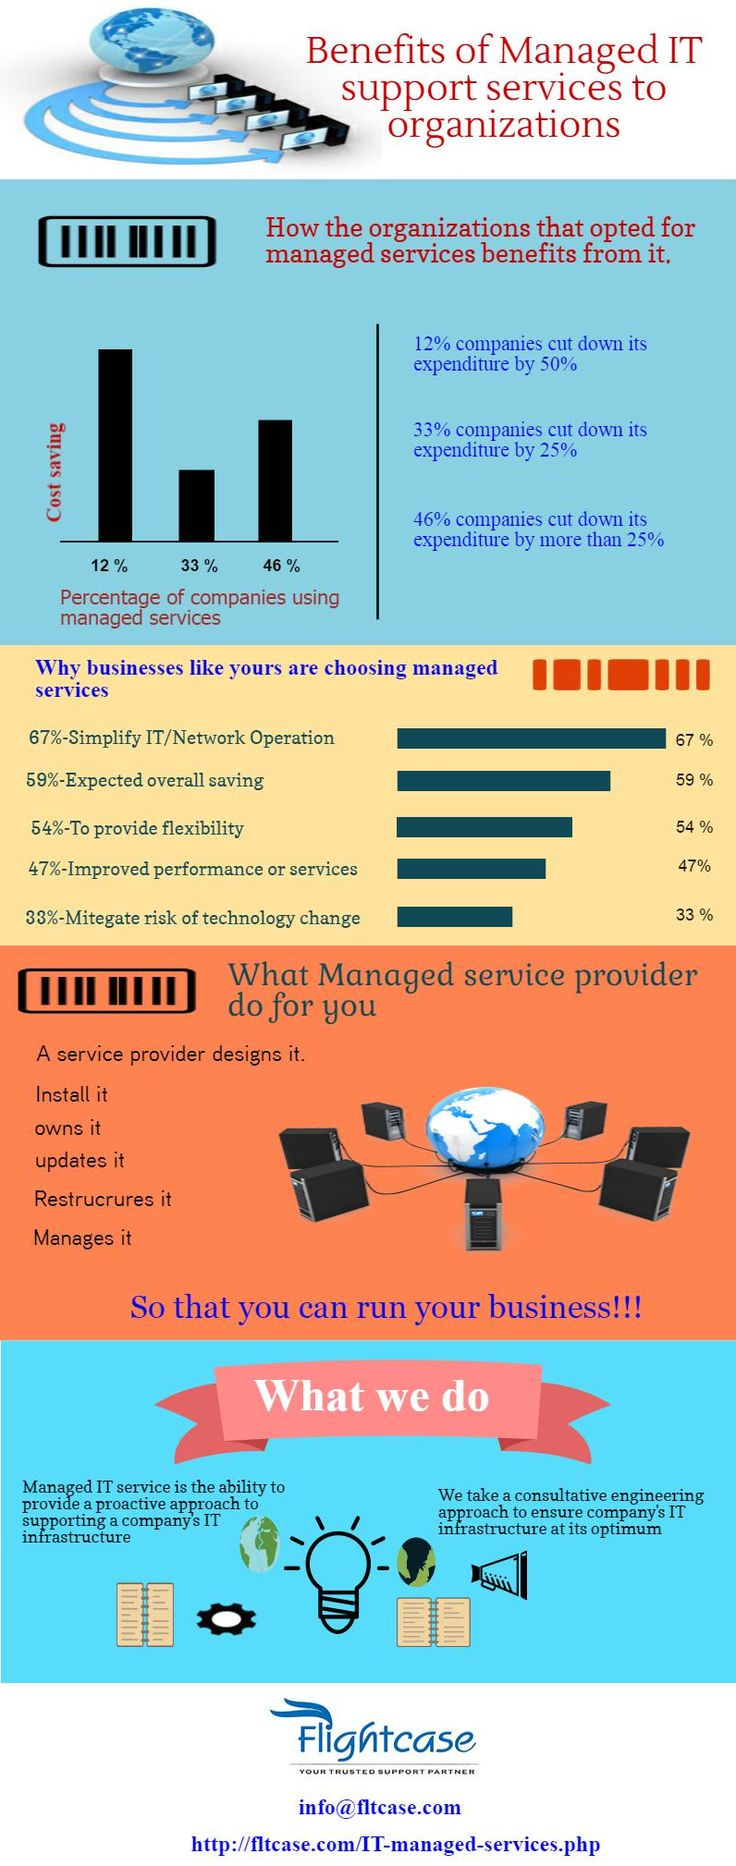 Benefits of #managedITsupportservices to organizations  To know more visit: http://fltcase.com/IT-managed-services.php